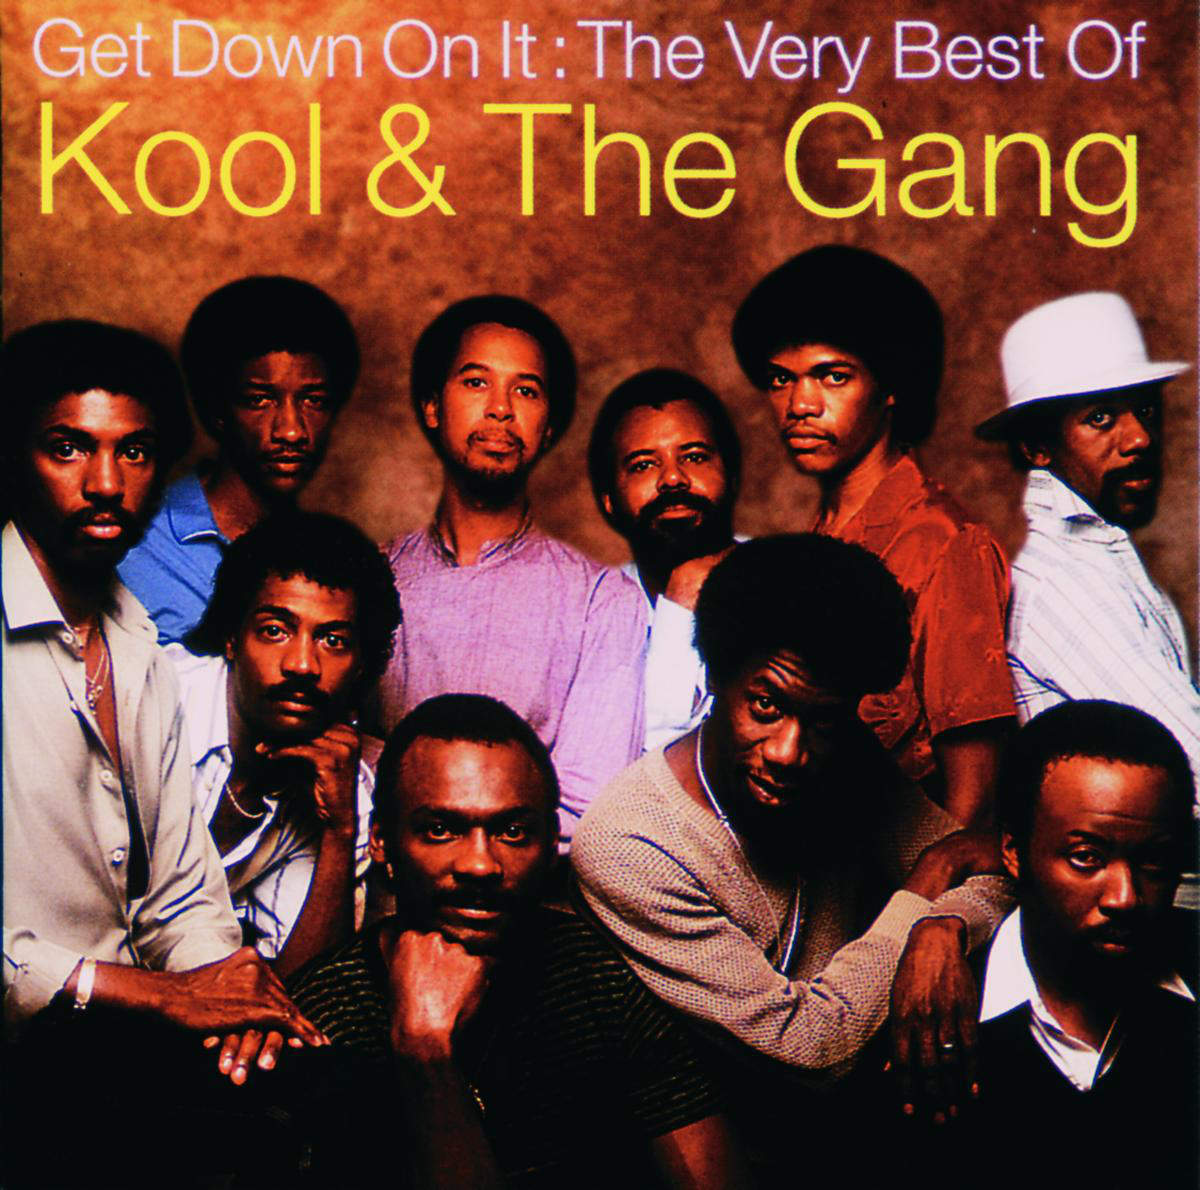 Retro iTunes Plus: Kool & the Gang - Get Down On It: The Very Best